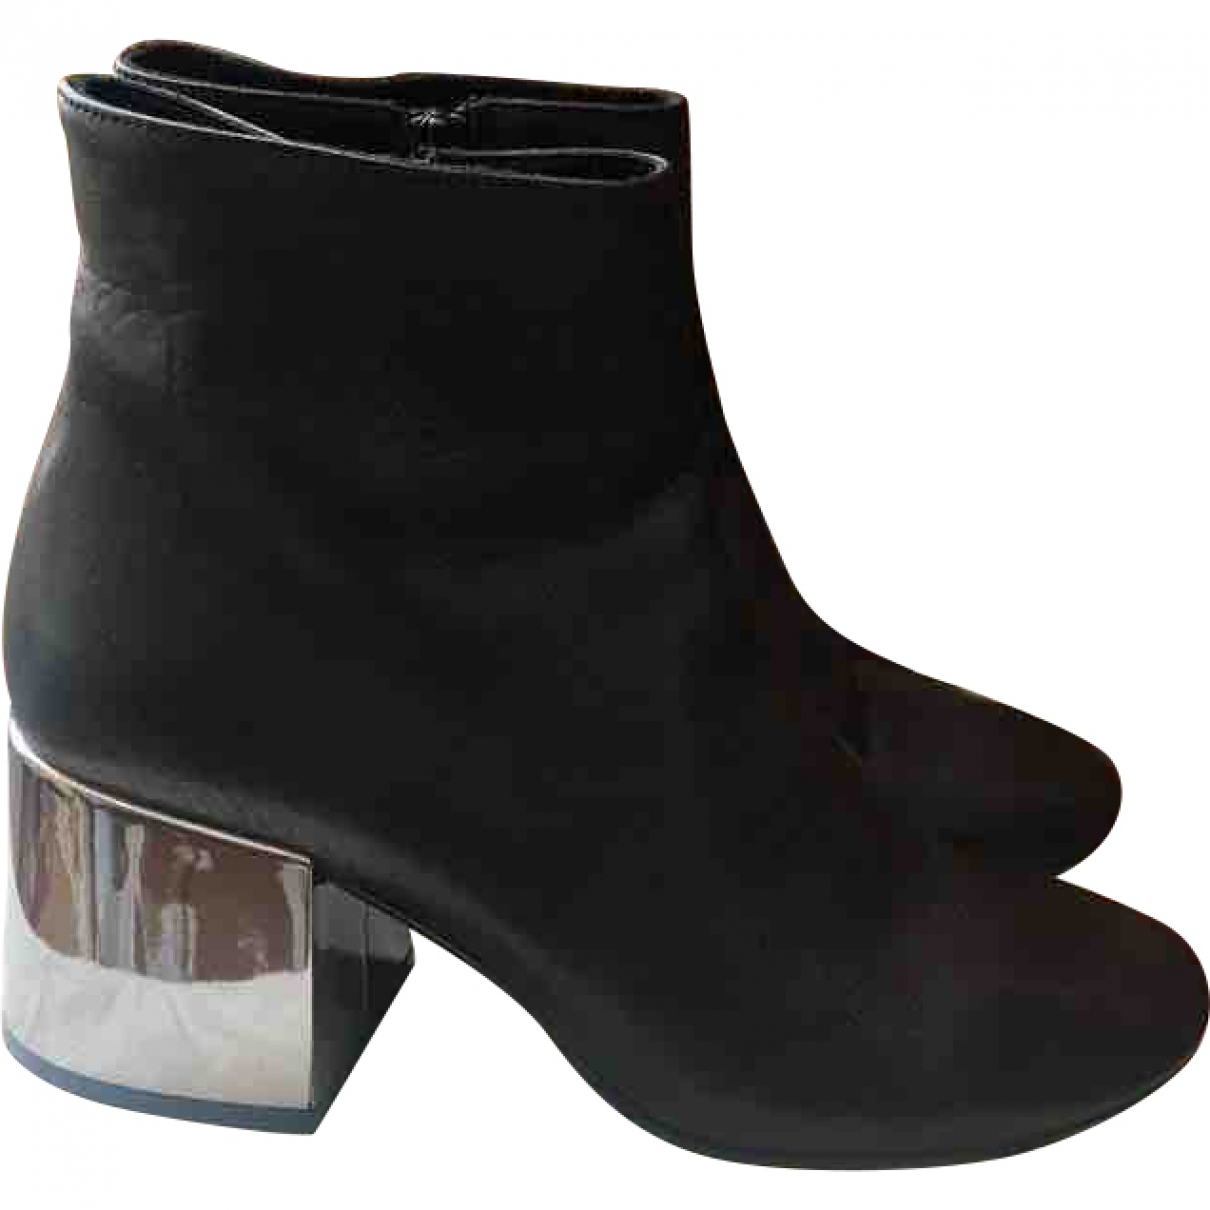 Mm6 \N Black Leather Boots for Women 40 EU